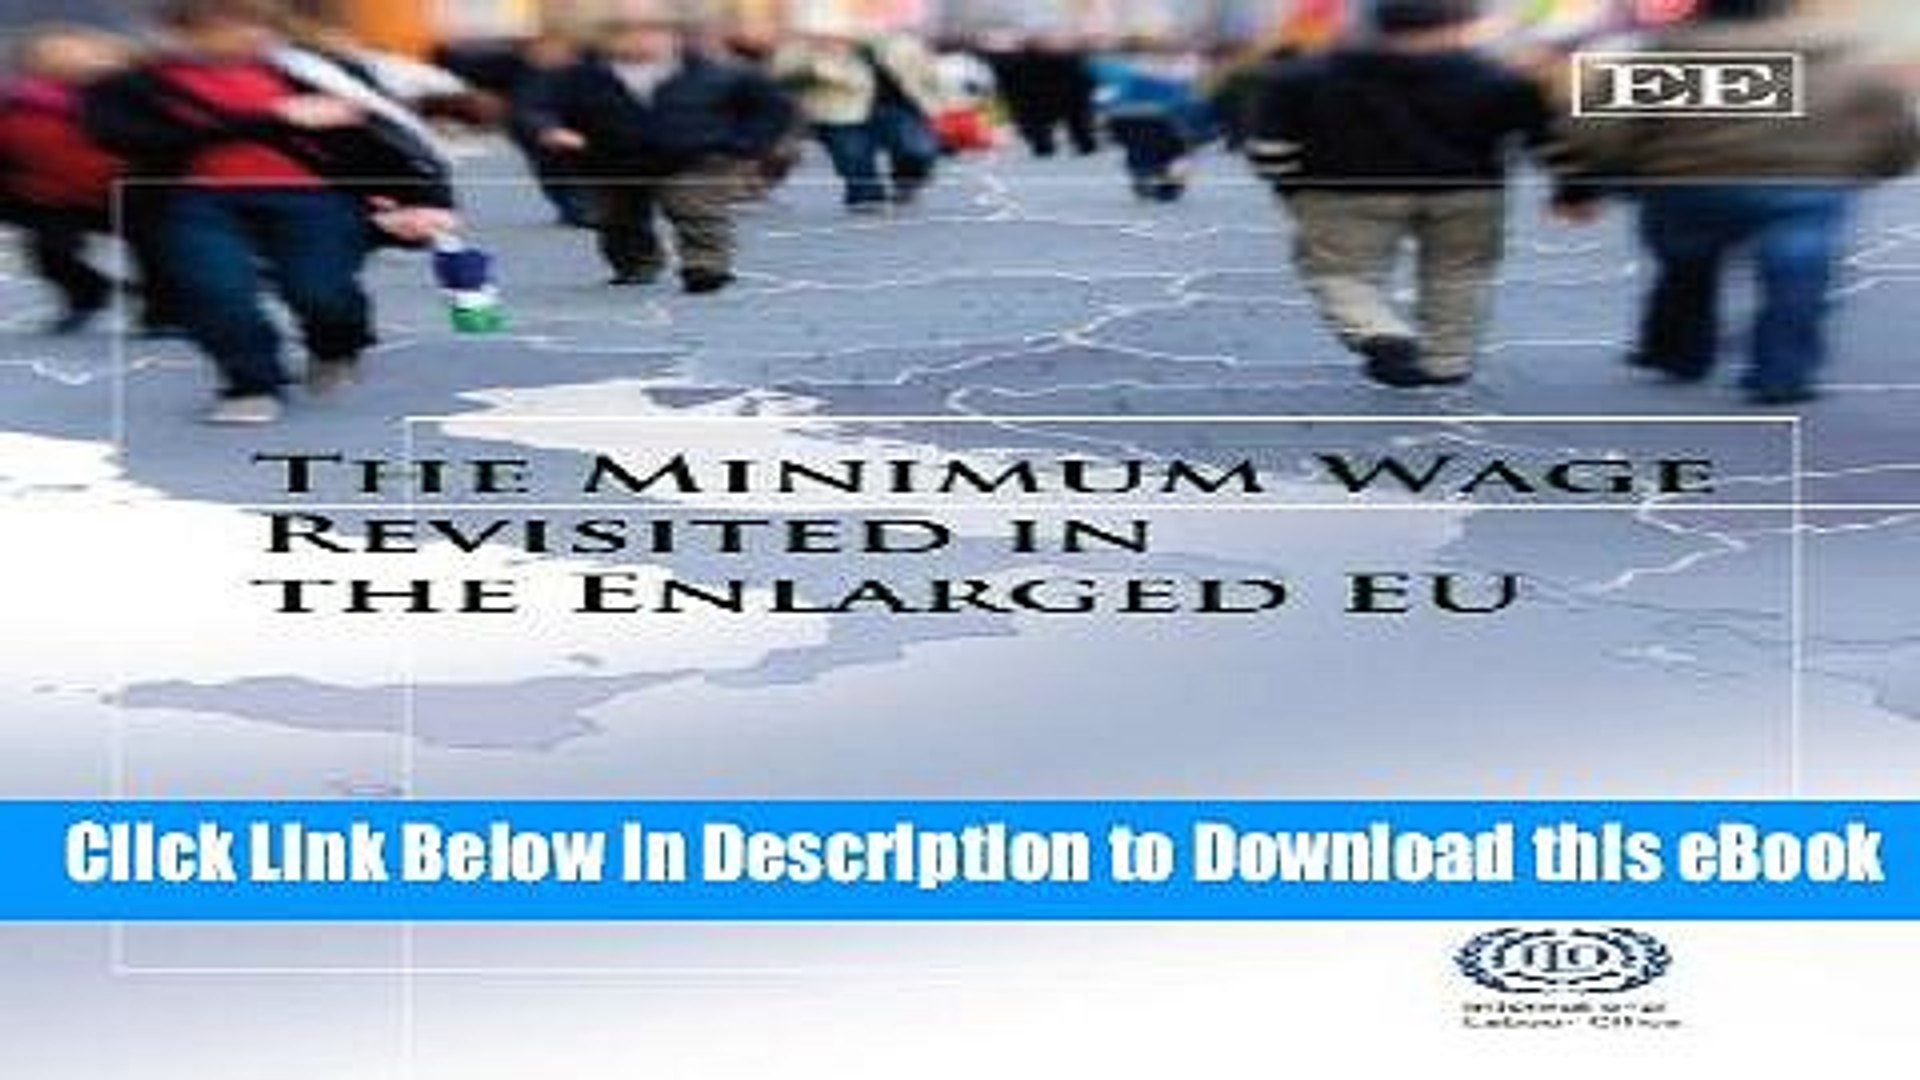 PDF [FREE] Download The Minimum Wage Revisited in the Enlarged EU Free Audiobook